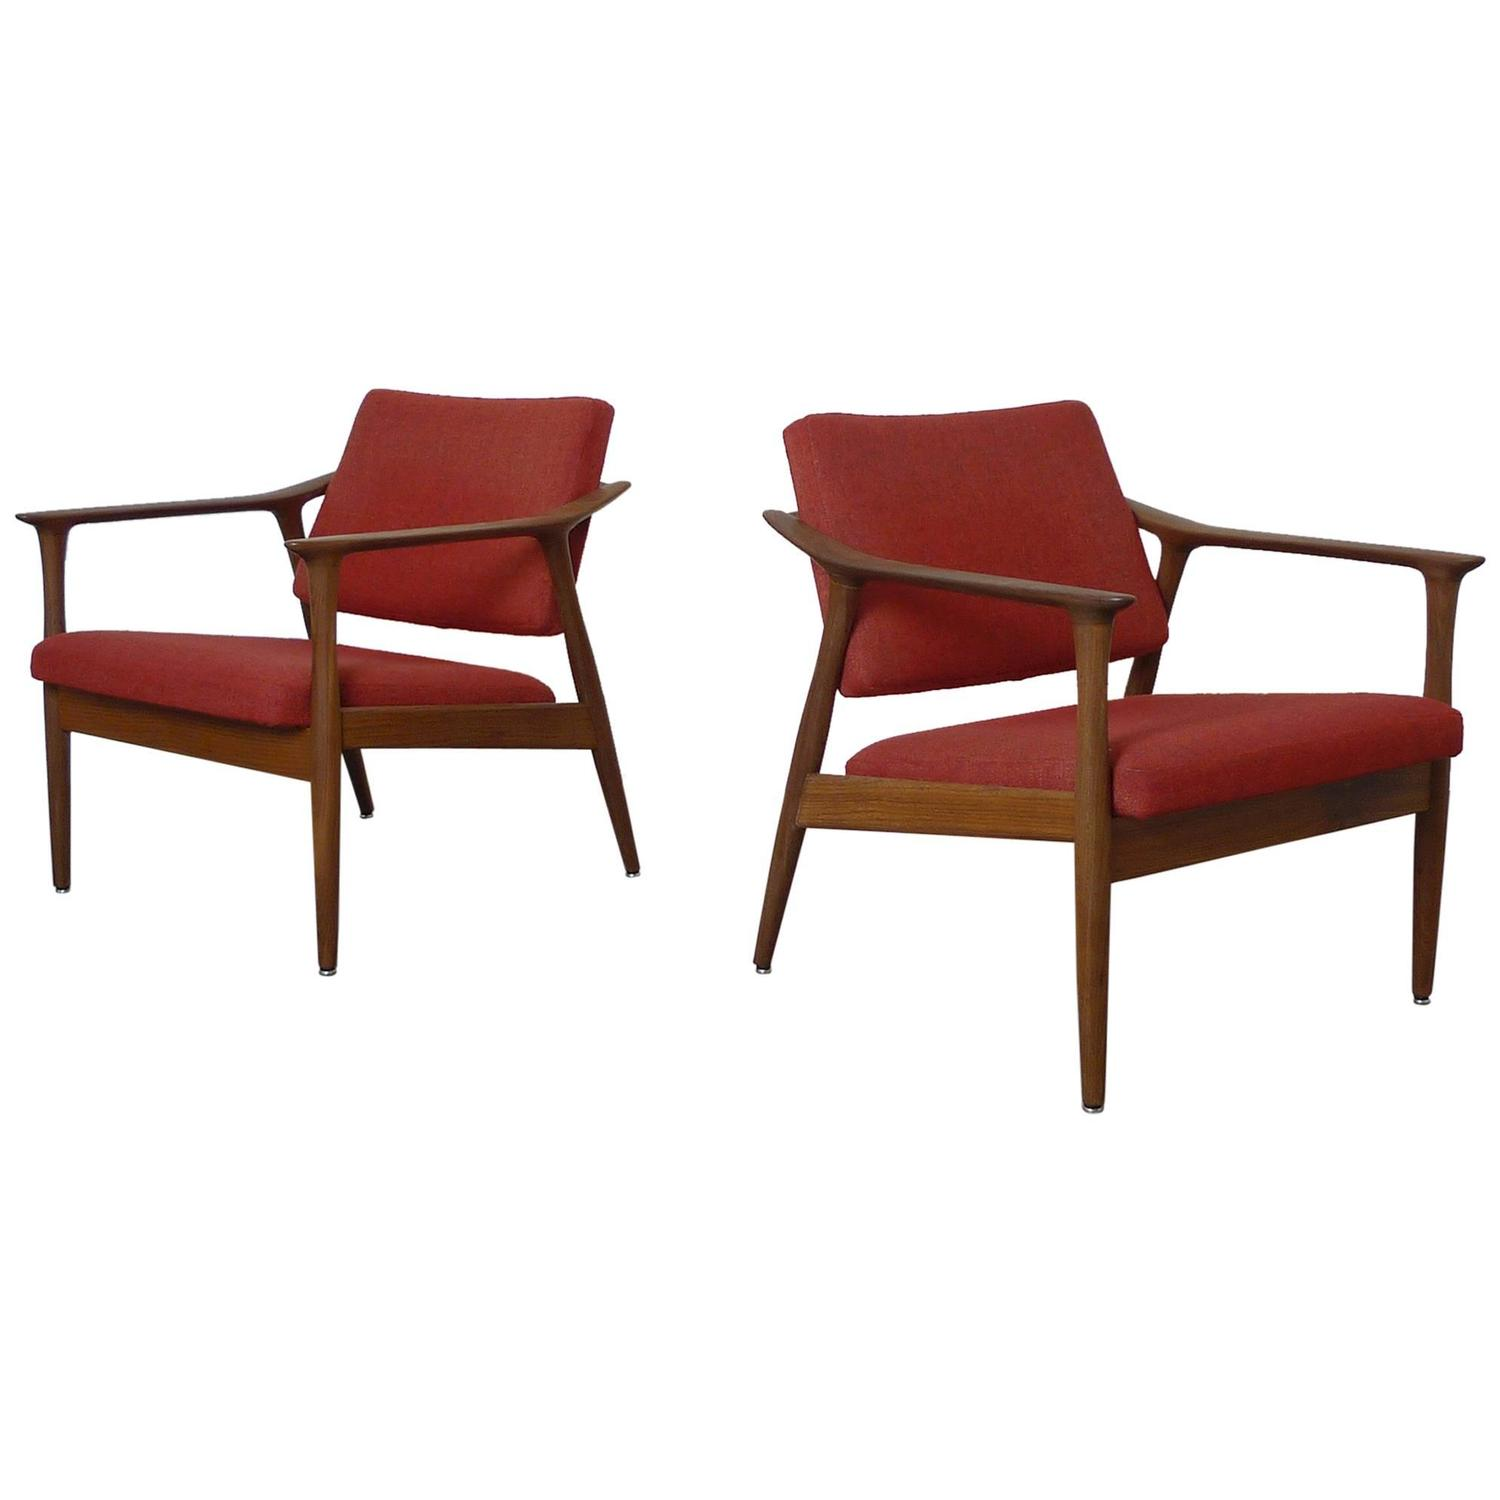 Sandvik Norway  city photo : ... Tono Easy Chairs by Torbjørn Afdal for Sandvik Mobler, Norway, 1950s